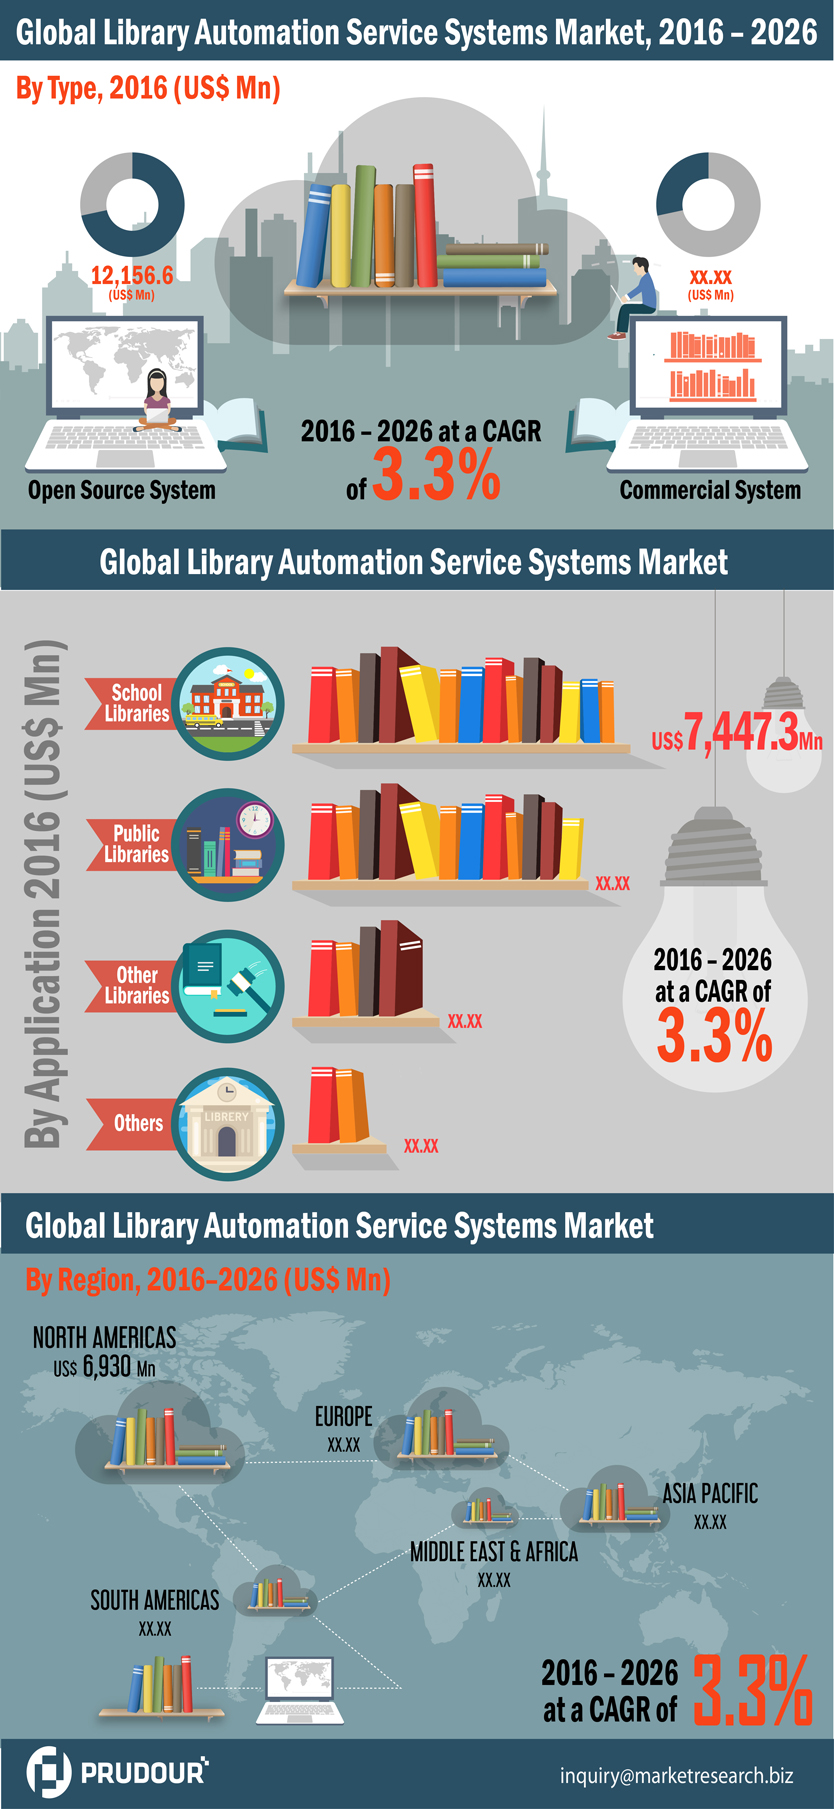 Global Library Automation Service Systems Market Revenue from software expected to increase US$ 9,310.8 Mn between 2016-2026